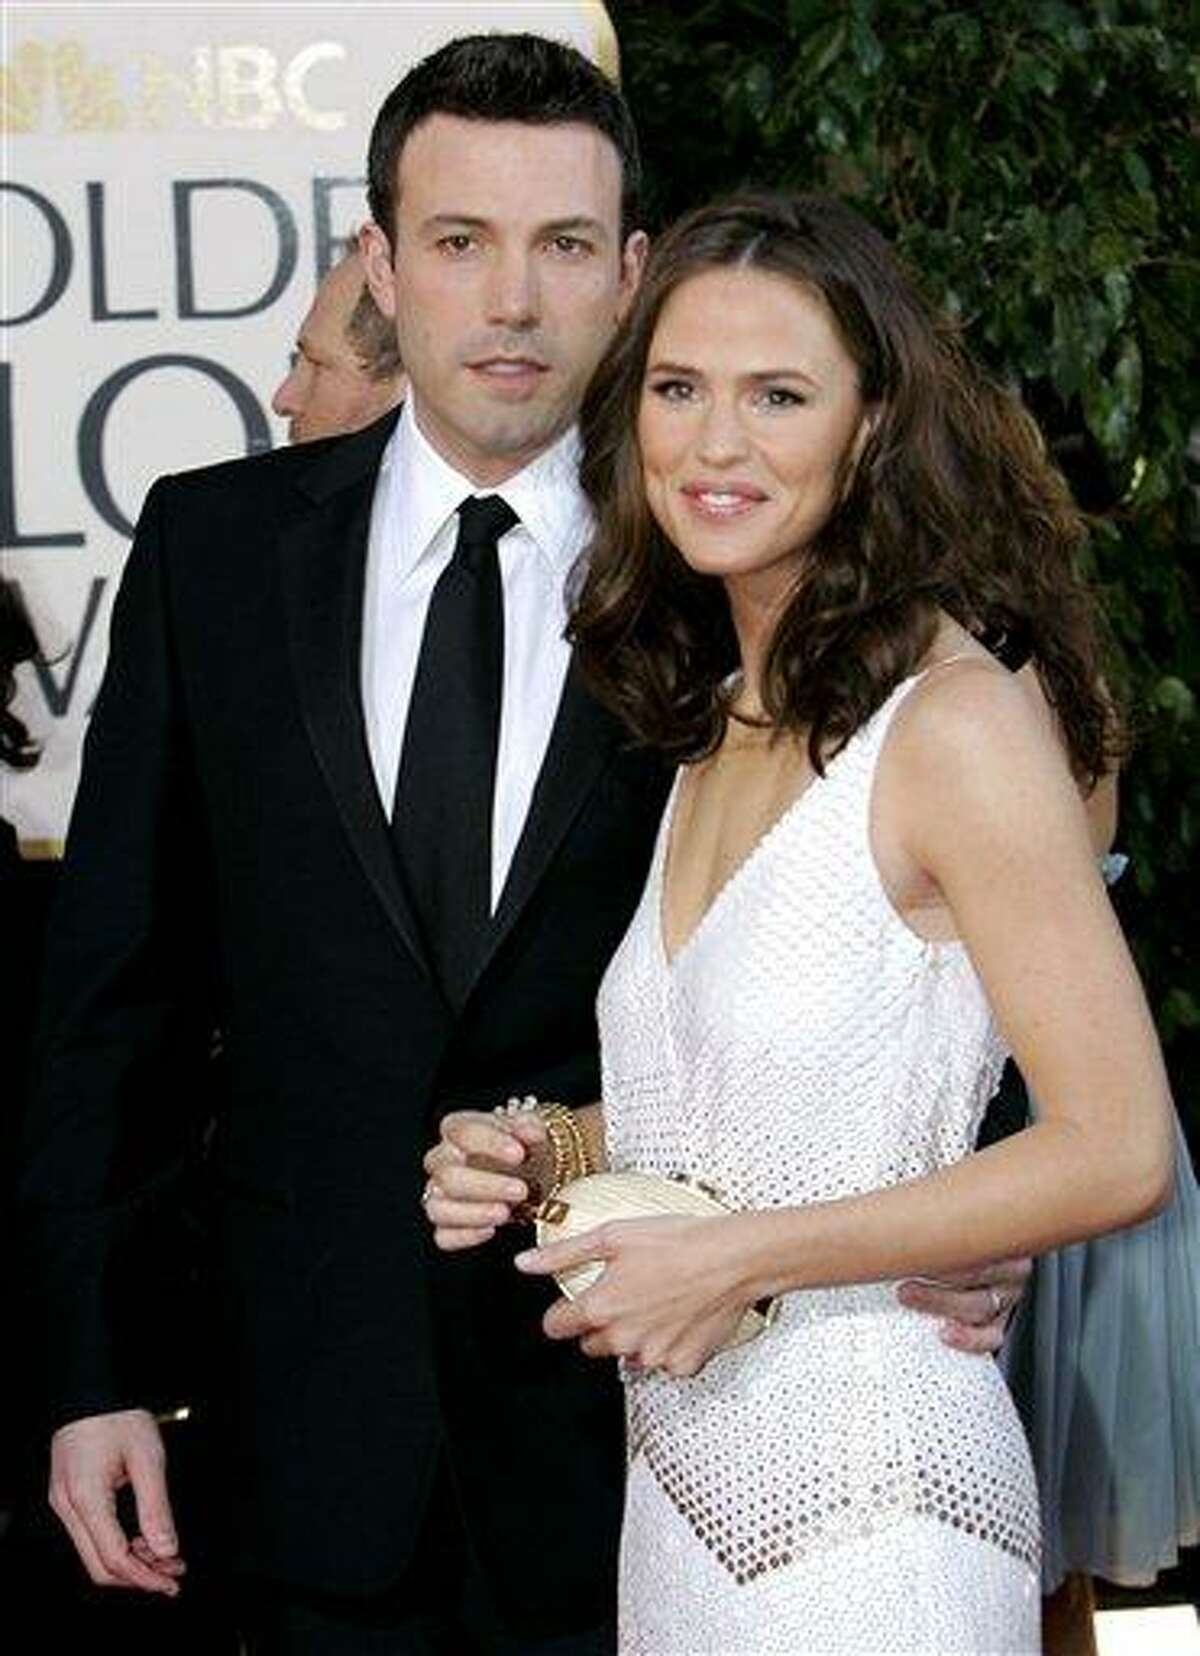 In this January 2007 file photo, Ben Affleck, left, and Jennifer Garner arrive for the 64th Annual Golden Globe Awards in Beverly Hills, Calif. Affleck has confirmed the Feb. 27 birth of his son Samuel Garner Affleck with wife actress Jennifer Garner on his official Facebook page. This is the couple's third child. Associated Pres